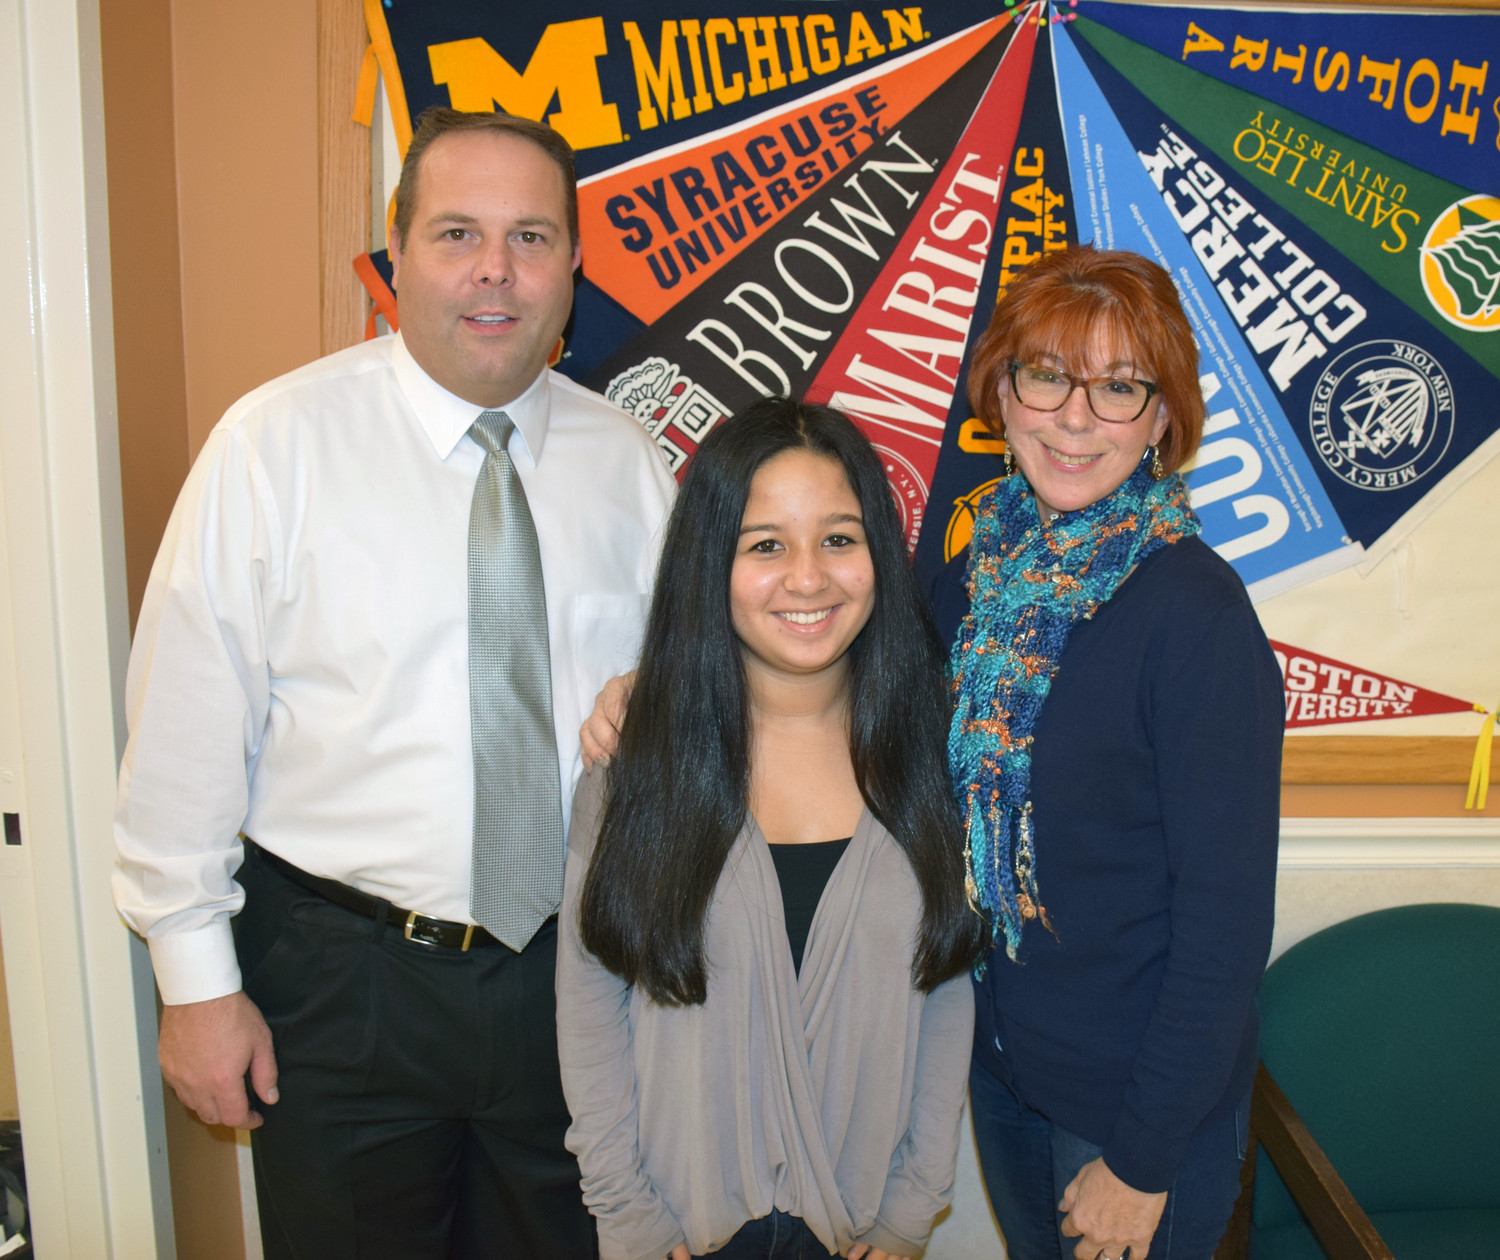 Leilani Blakeman, a sophomore at East Meadow High School, center, was named a Hugh O'Brian Youth Leadership ambassador for the 2017-2018 academic year. She is pictured here with William Brennan, the dean of students, left, and Mona Allen, the chairperson of the HOBY Committee and a guidance counselor at the high school.